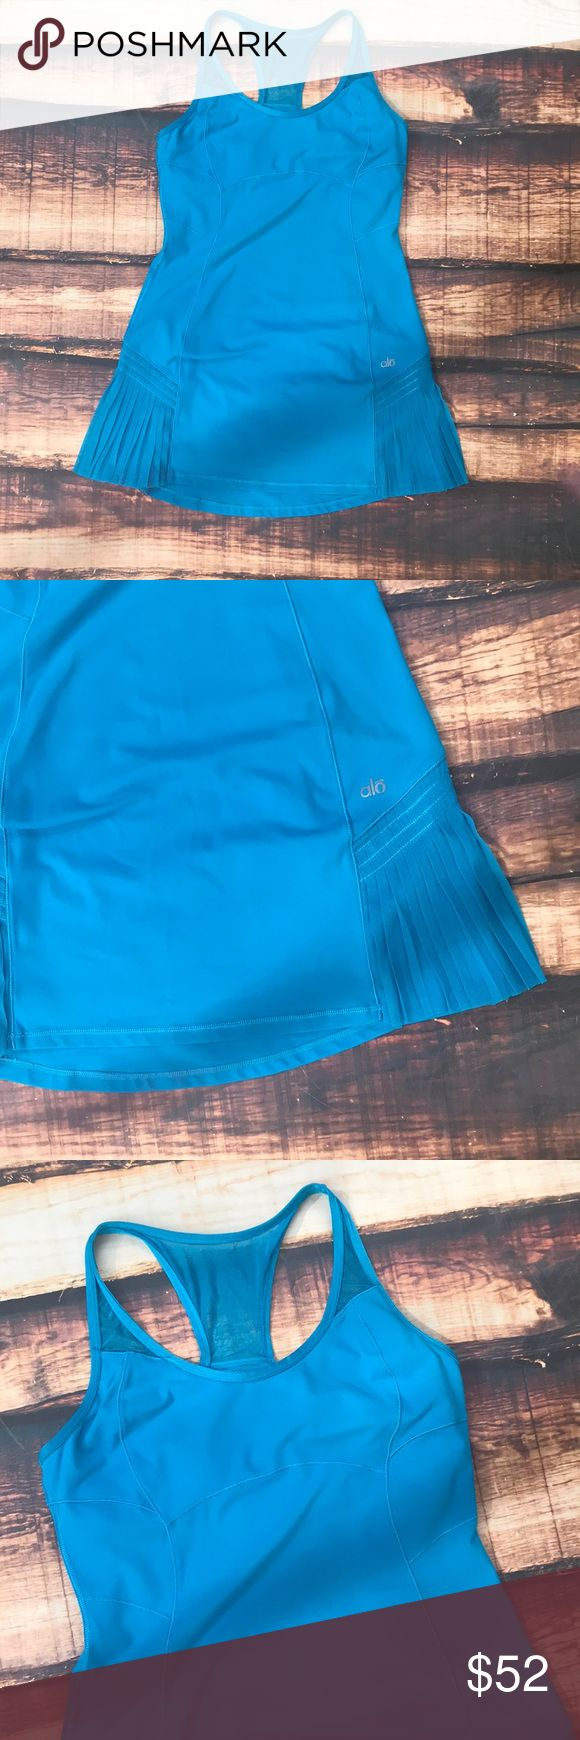 Alo Yoga Cool Fit Bright Blue Athletic Dress Cute athletic dress in a beautiful bright blue color! Color is so much brighter in person! Perfect condition with no flaws! Size medium. Cute little flutter detail overlay on sides. Built in sports bra. Stretchy fit. True to size. Mesh detail at bust. Length measures approximately 30.5 inches ALO Yoga Dresses